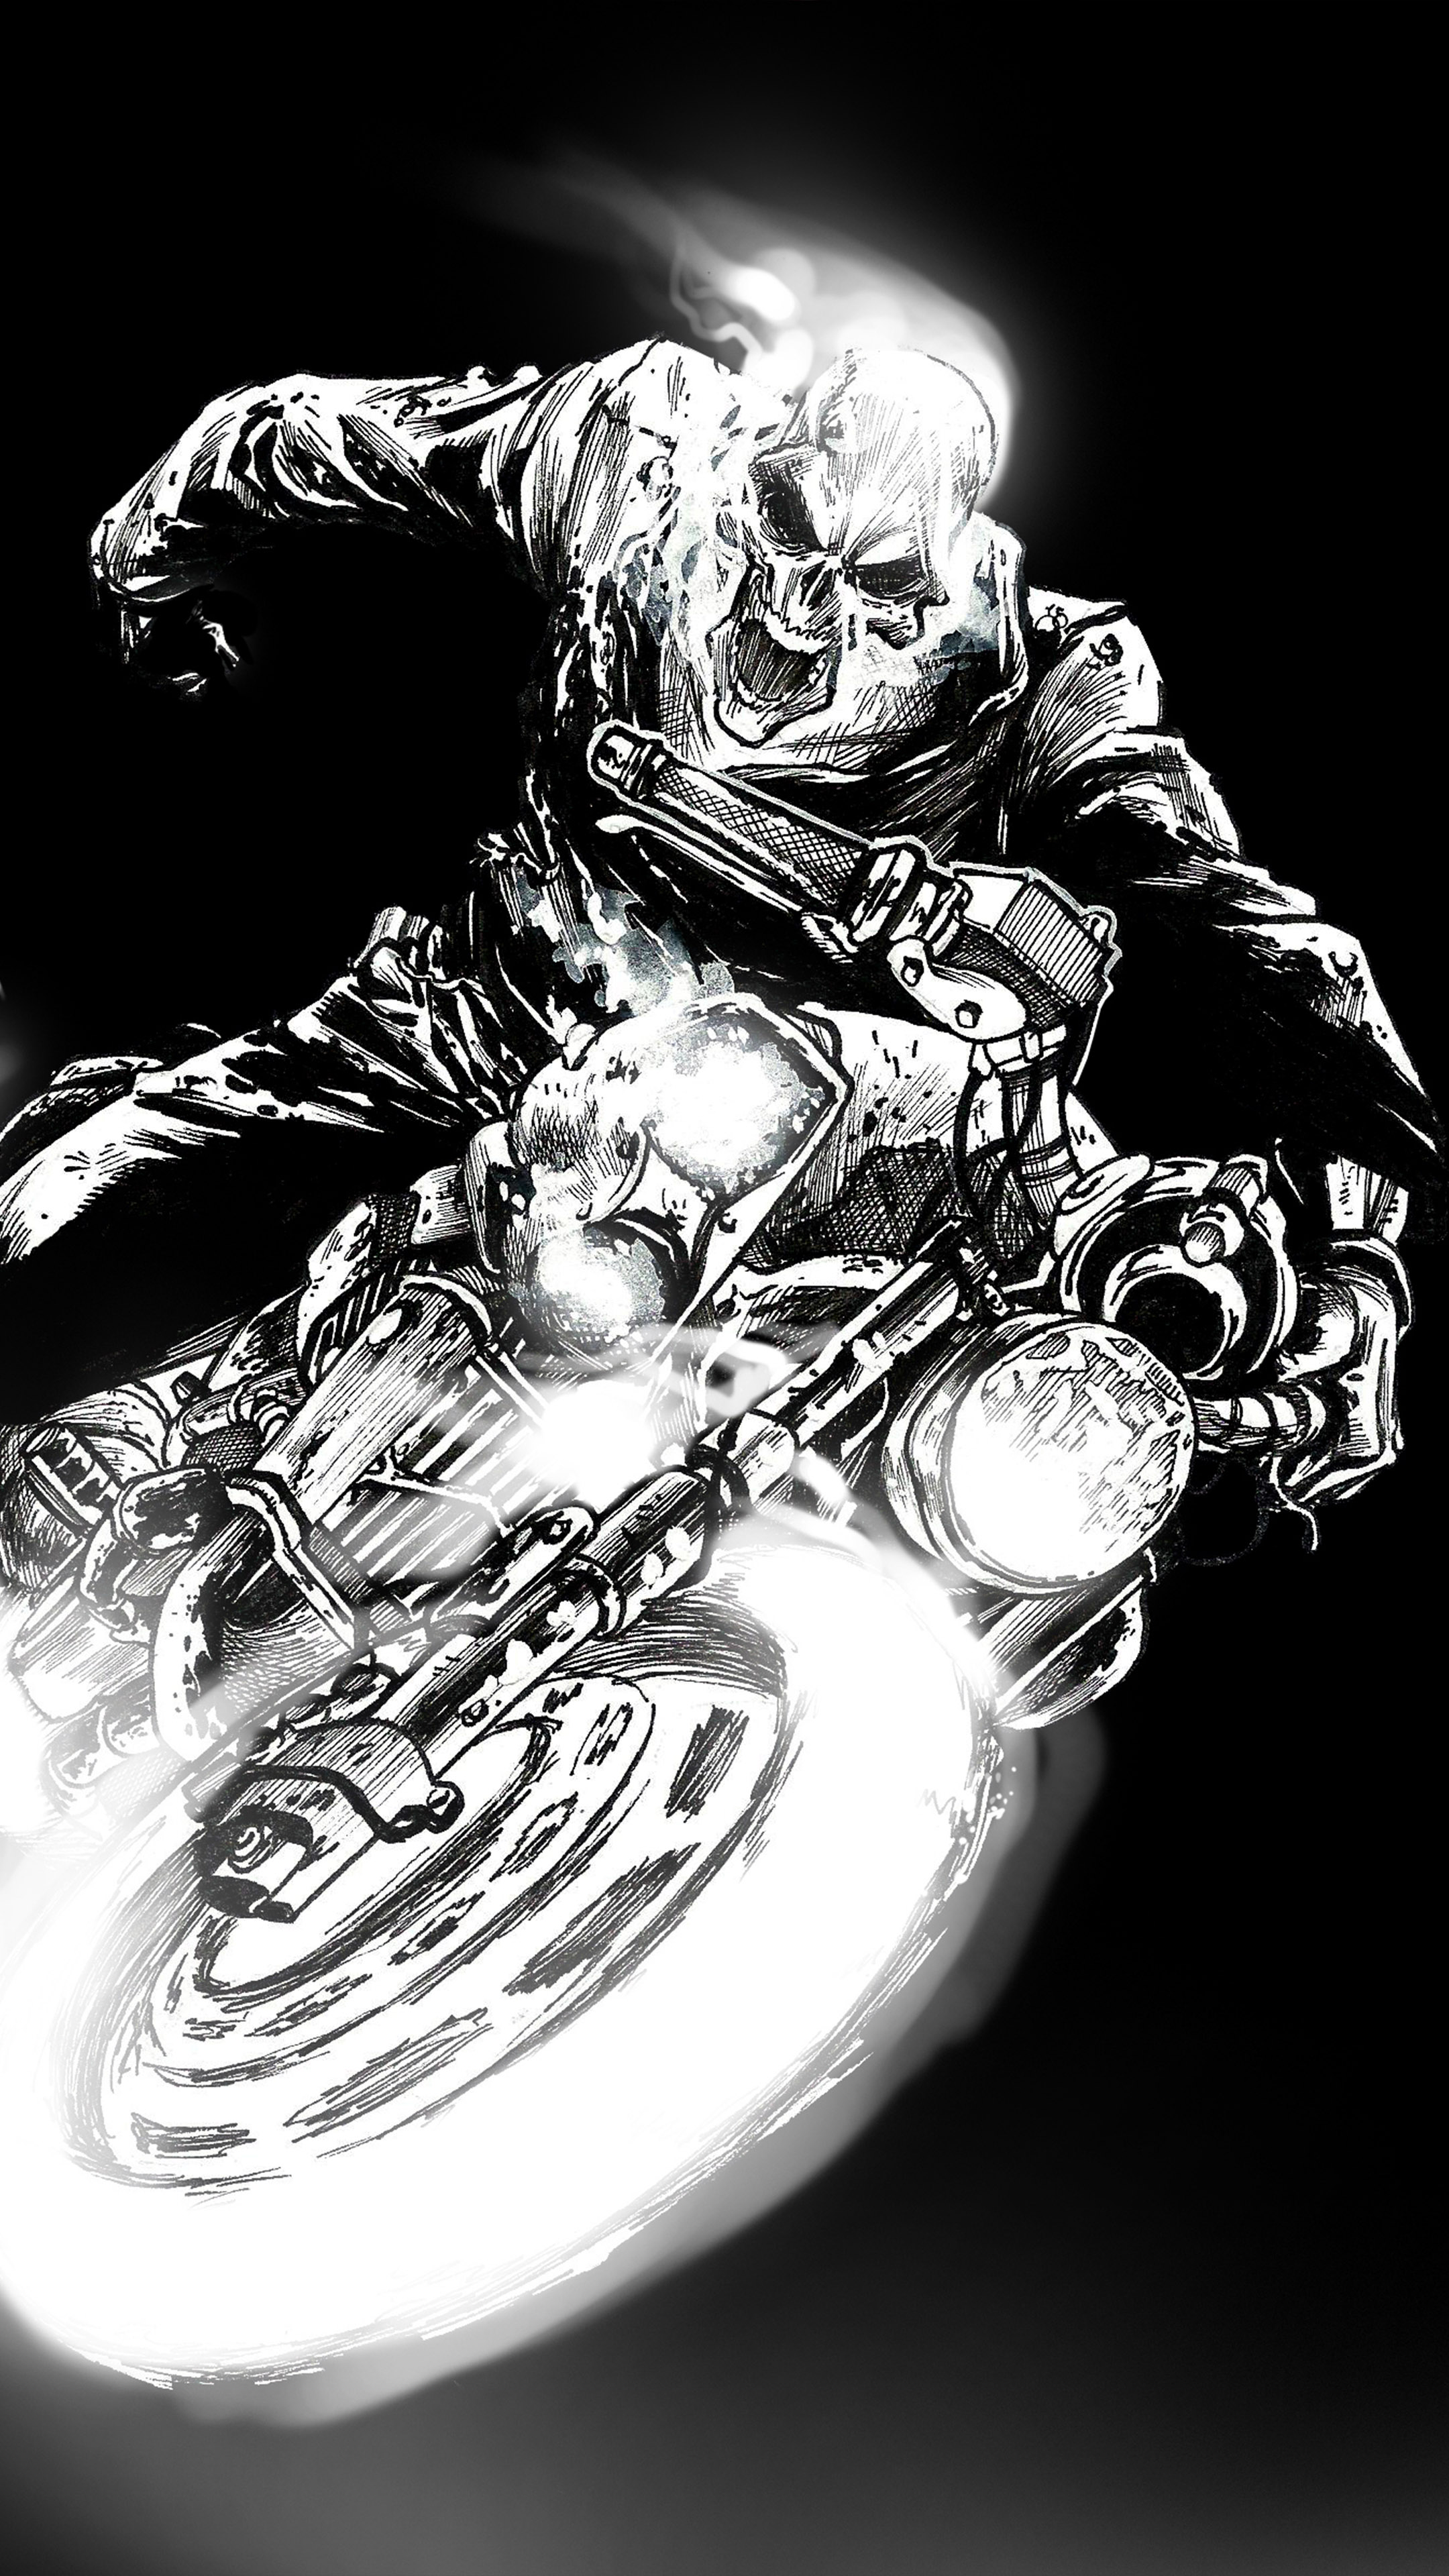 Ghost Rider Black Dark Artwork 4k Ultra Hd Mobile Wallpaper